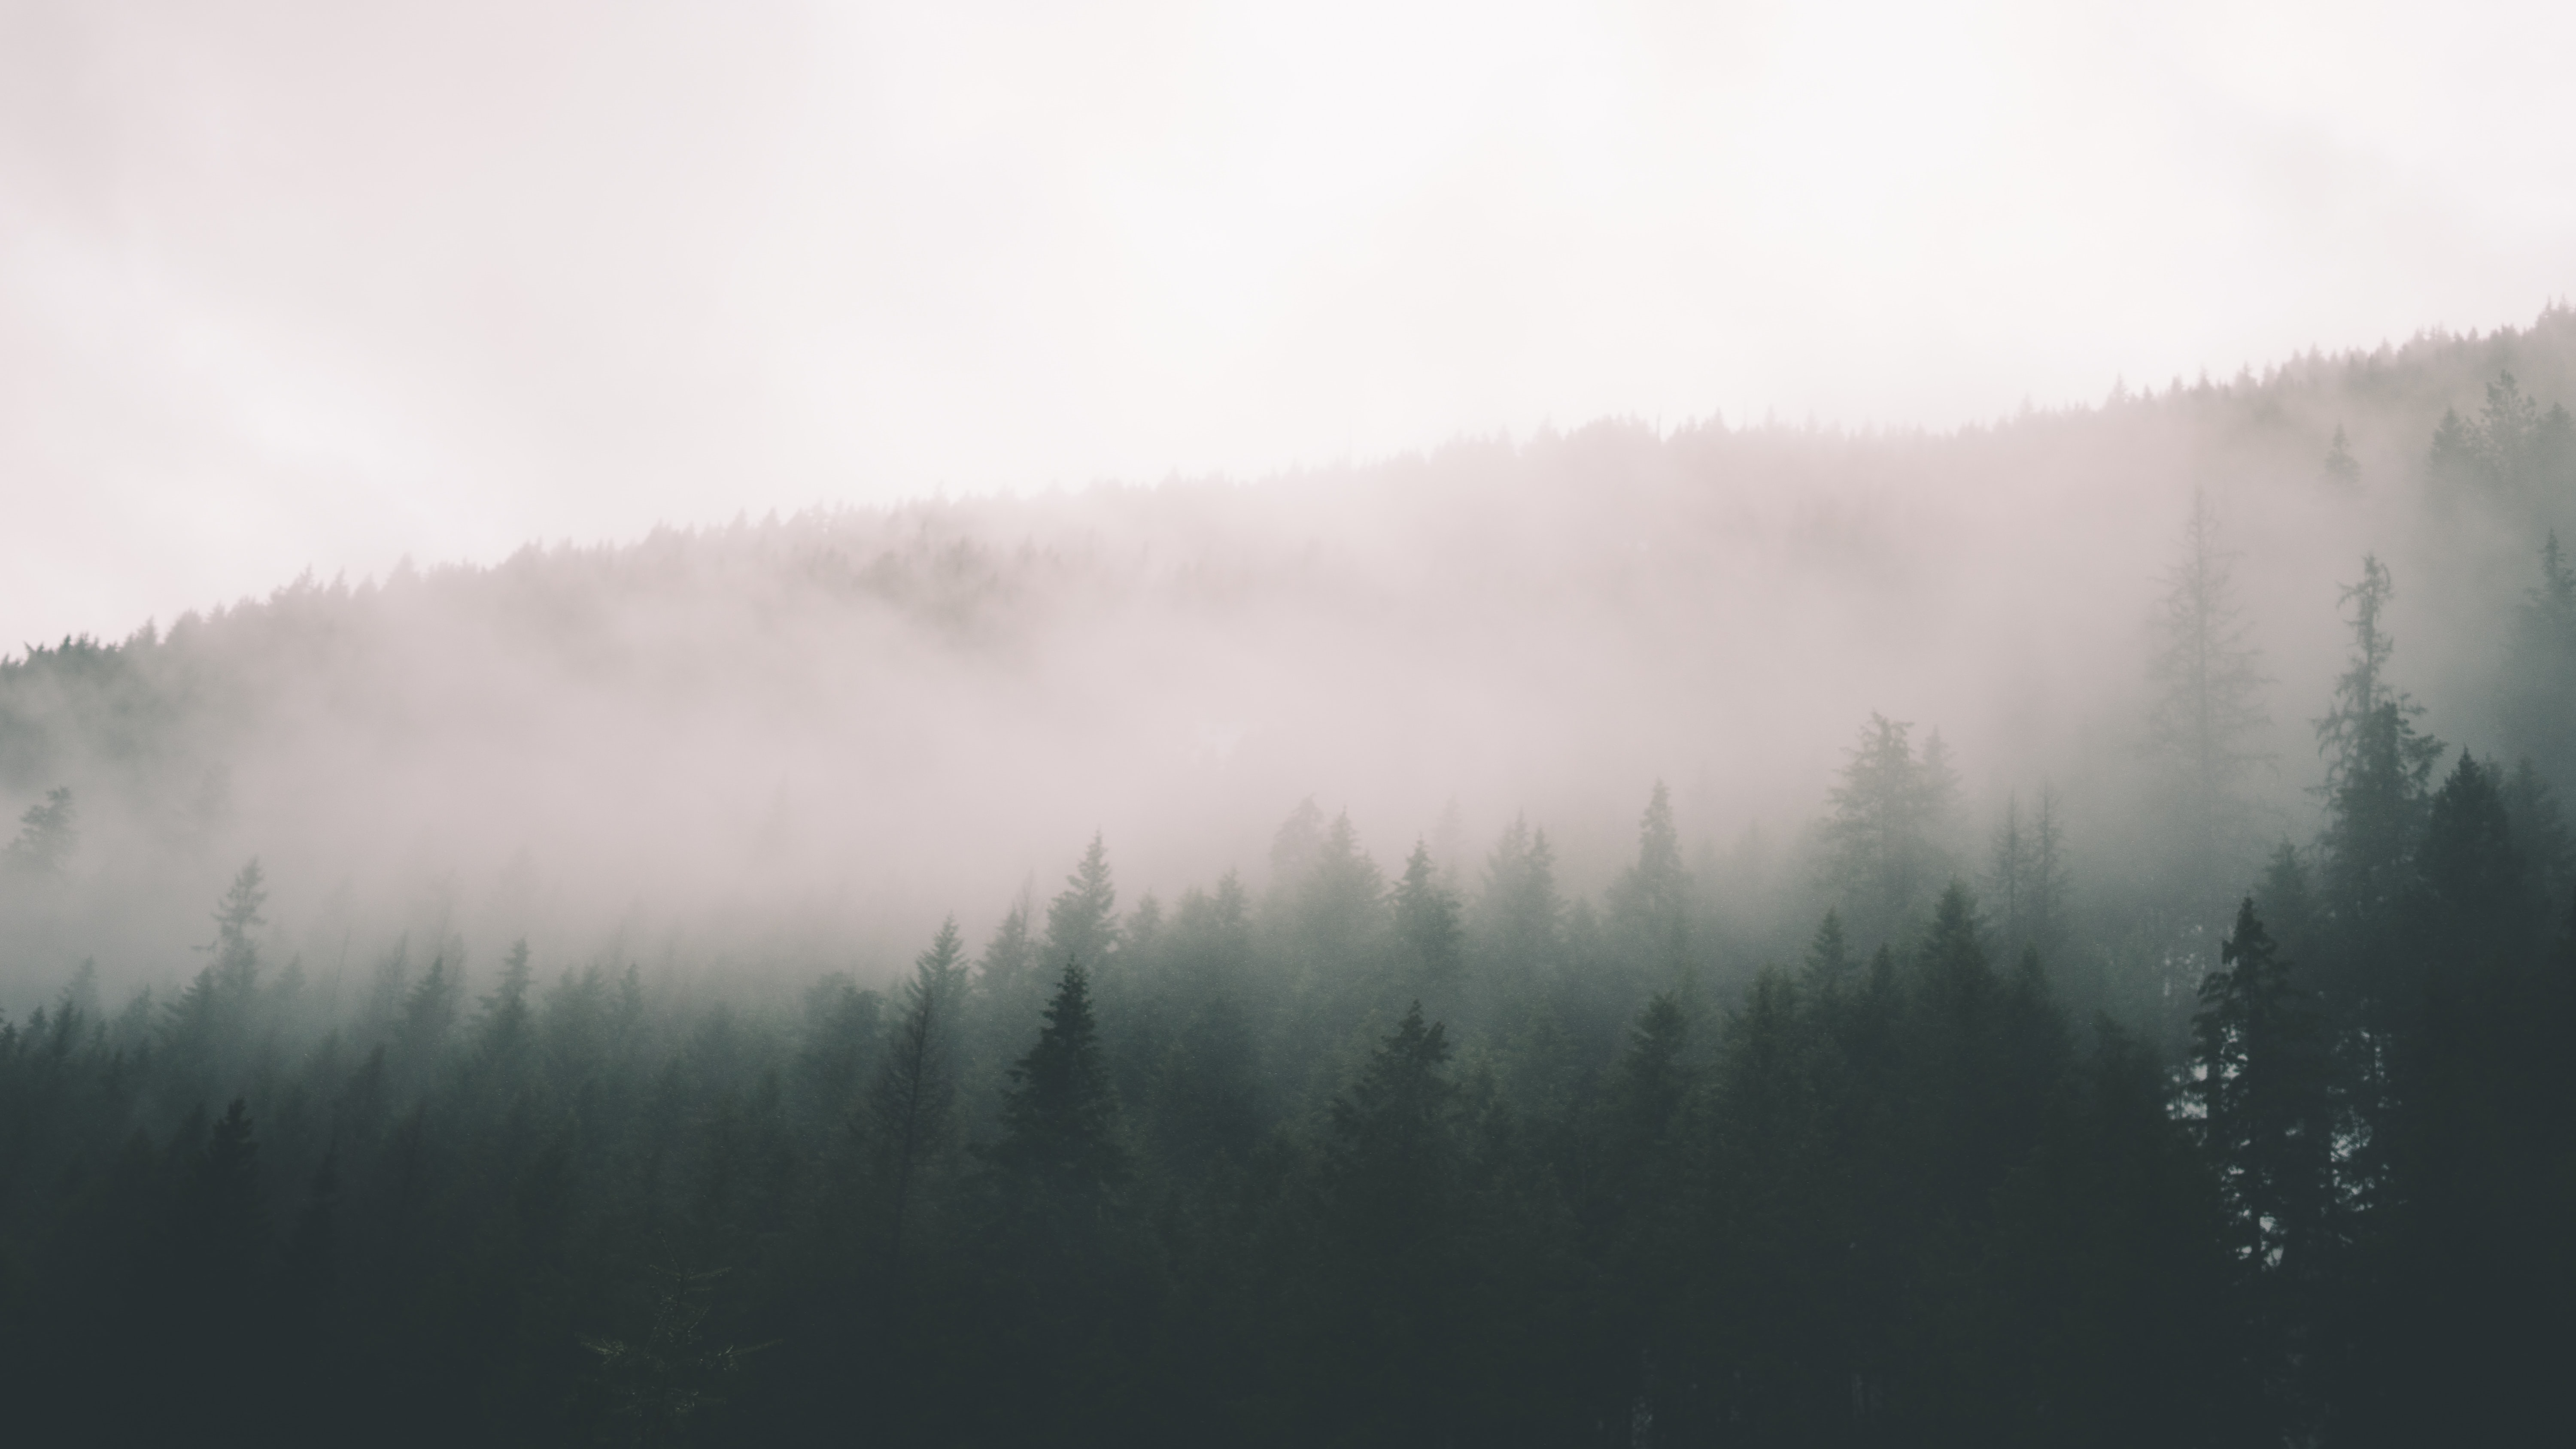 trees near mountain during foggy weather